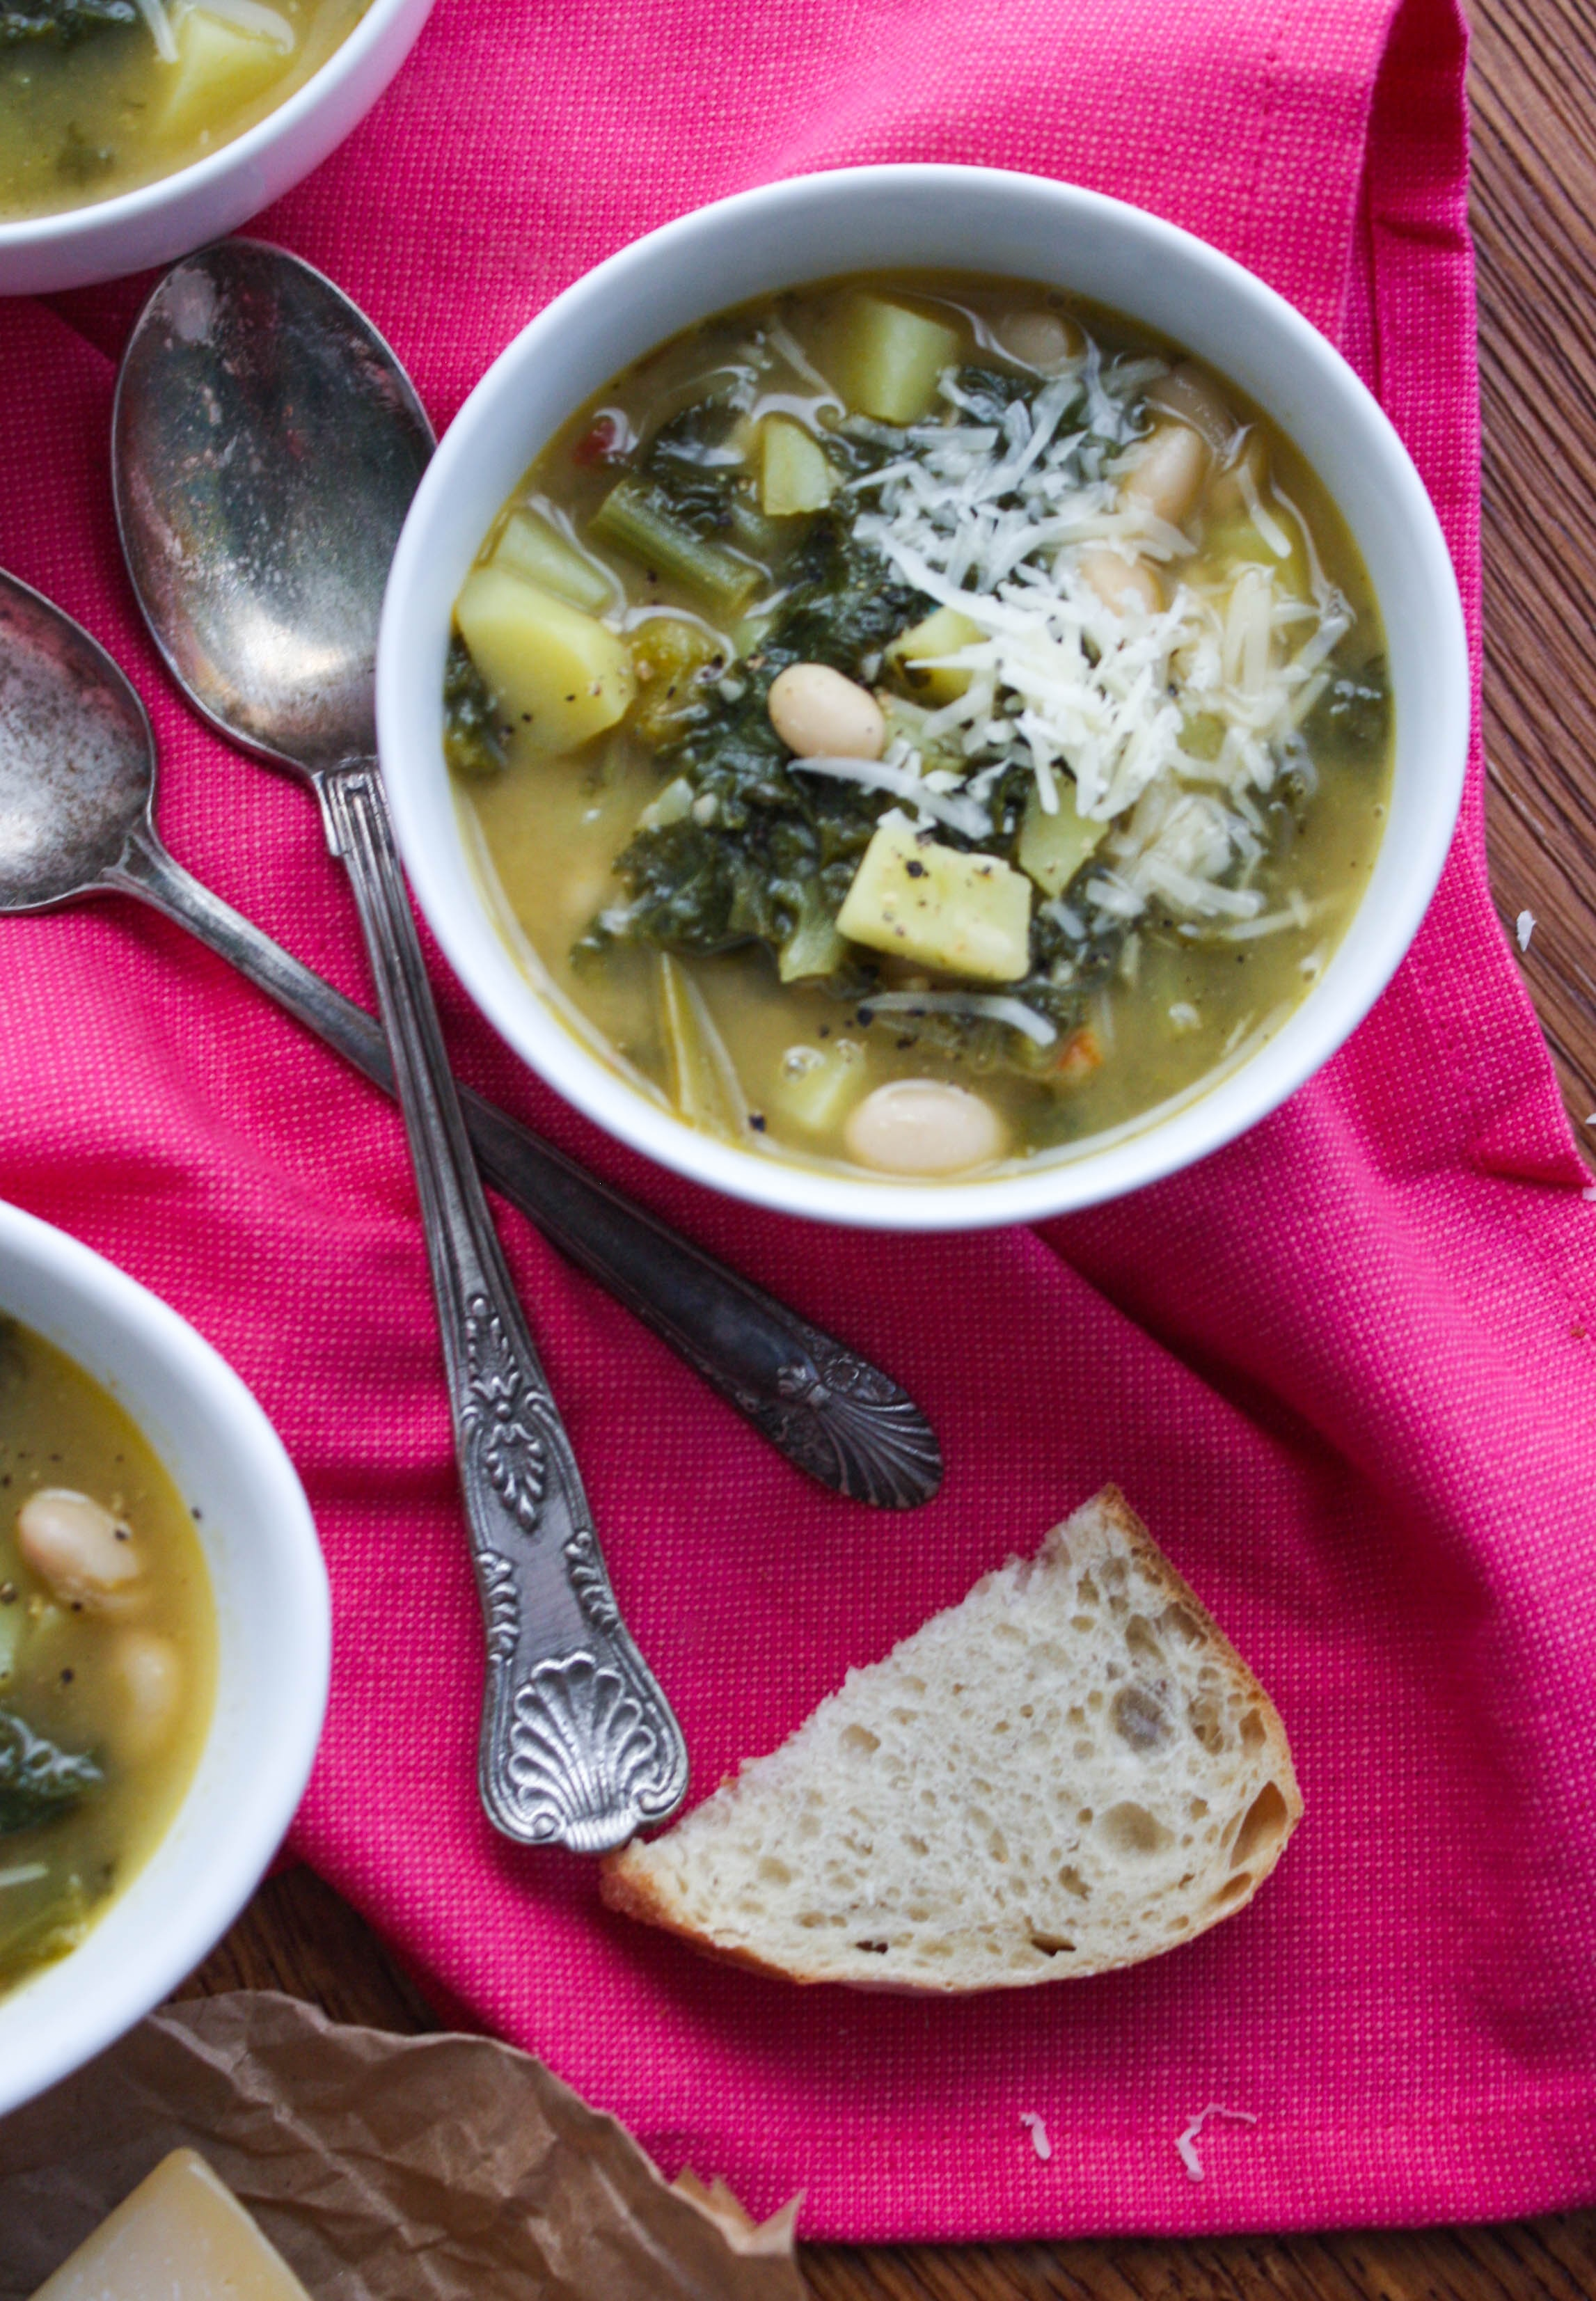 Hearty Escarole Soup with Pancetta is an easy soup to make for part of a filling meal. You'll love the ingredients in this delicious soup.